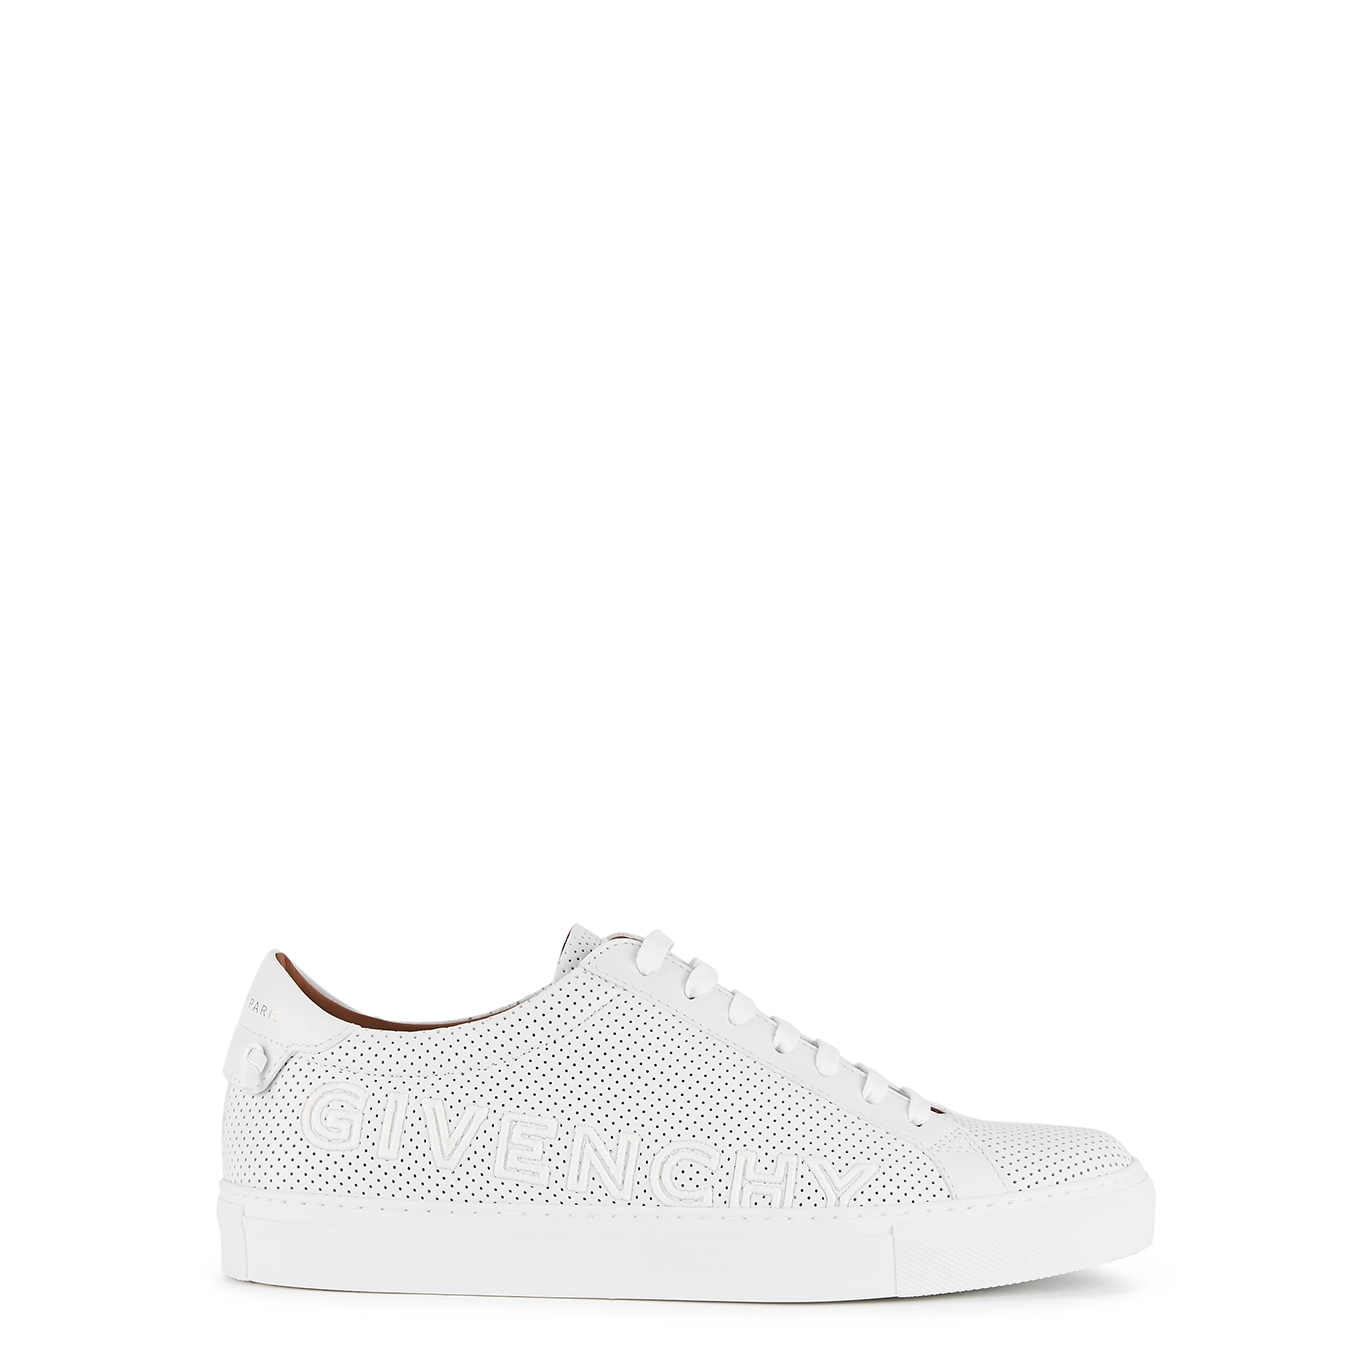 786840b2d Givenchy Urban Street perforated leather sneakers - Harvey Nichols